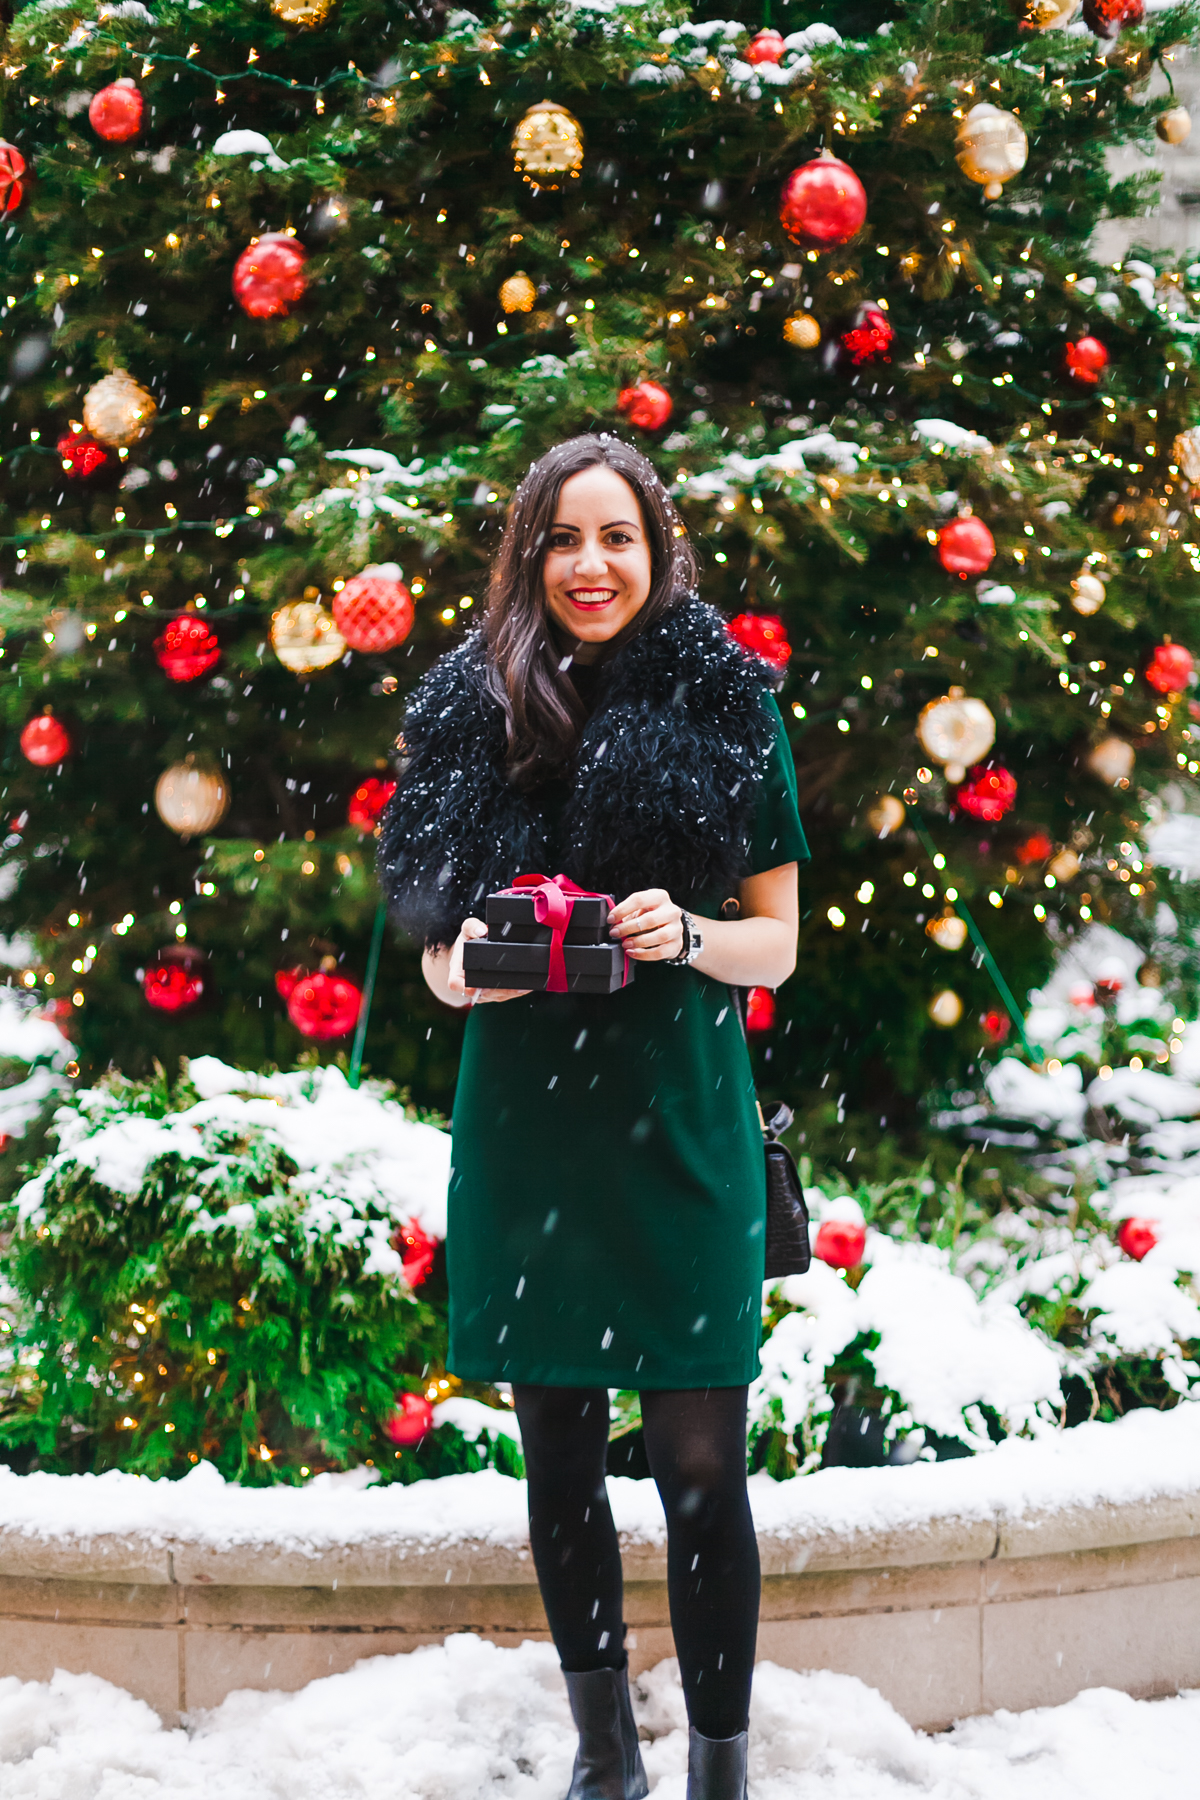 Yana Frigelis of NoMad Luxuries wears a green cocktail dress from zara and a fur scarf from asos for the holidays